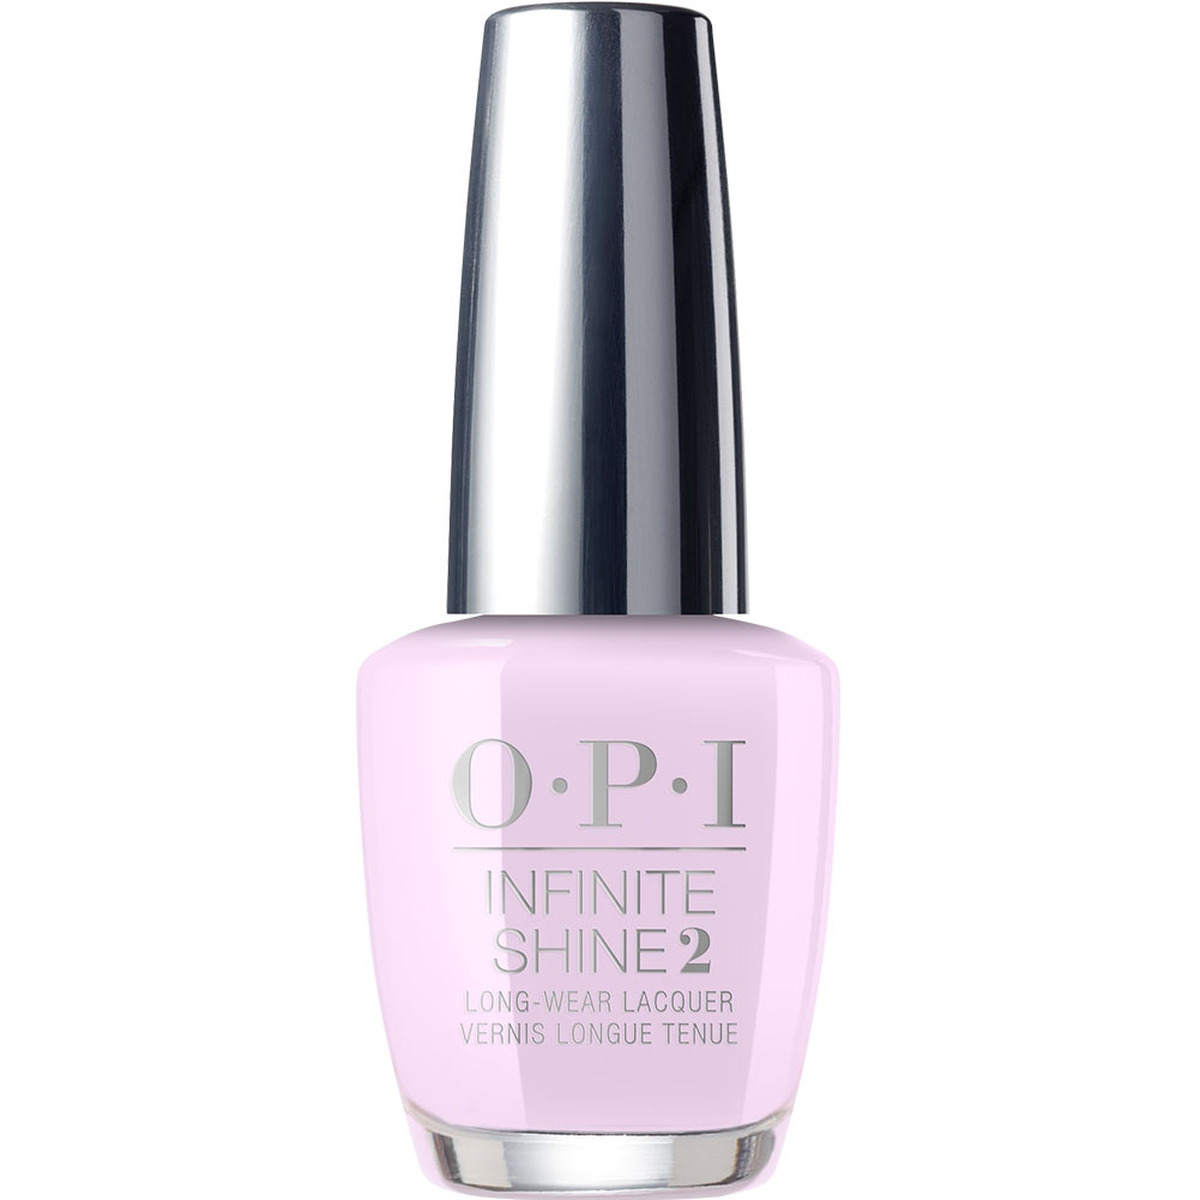 OPI Infinite Shine Лак для ногтей Frenchie Likes To Kiss?, 15 мл opi лак для ногтей iceland infinite shine 15 мл